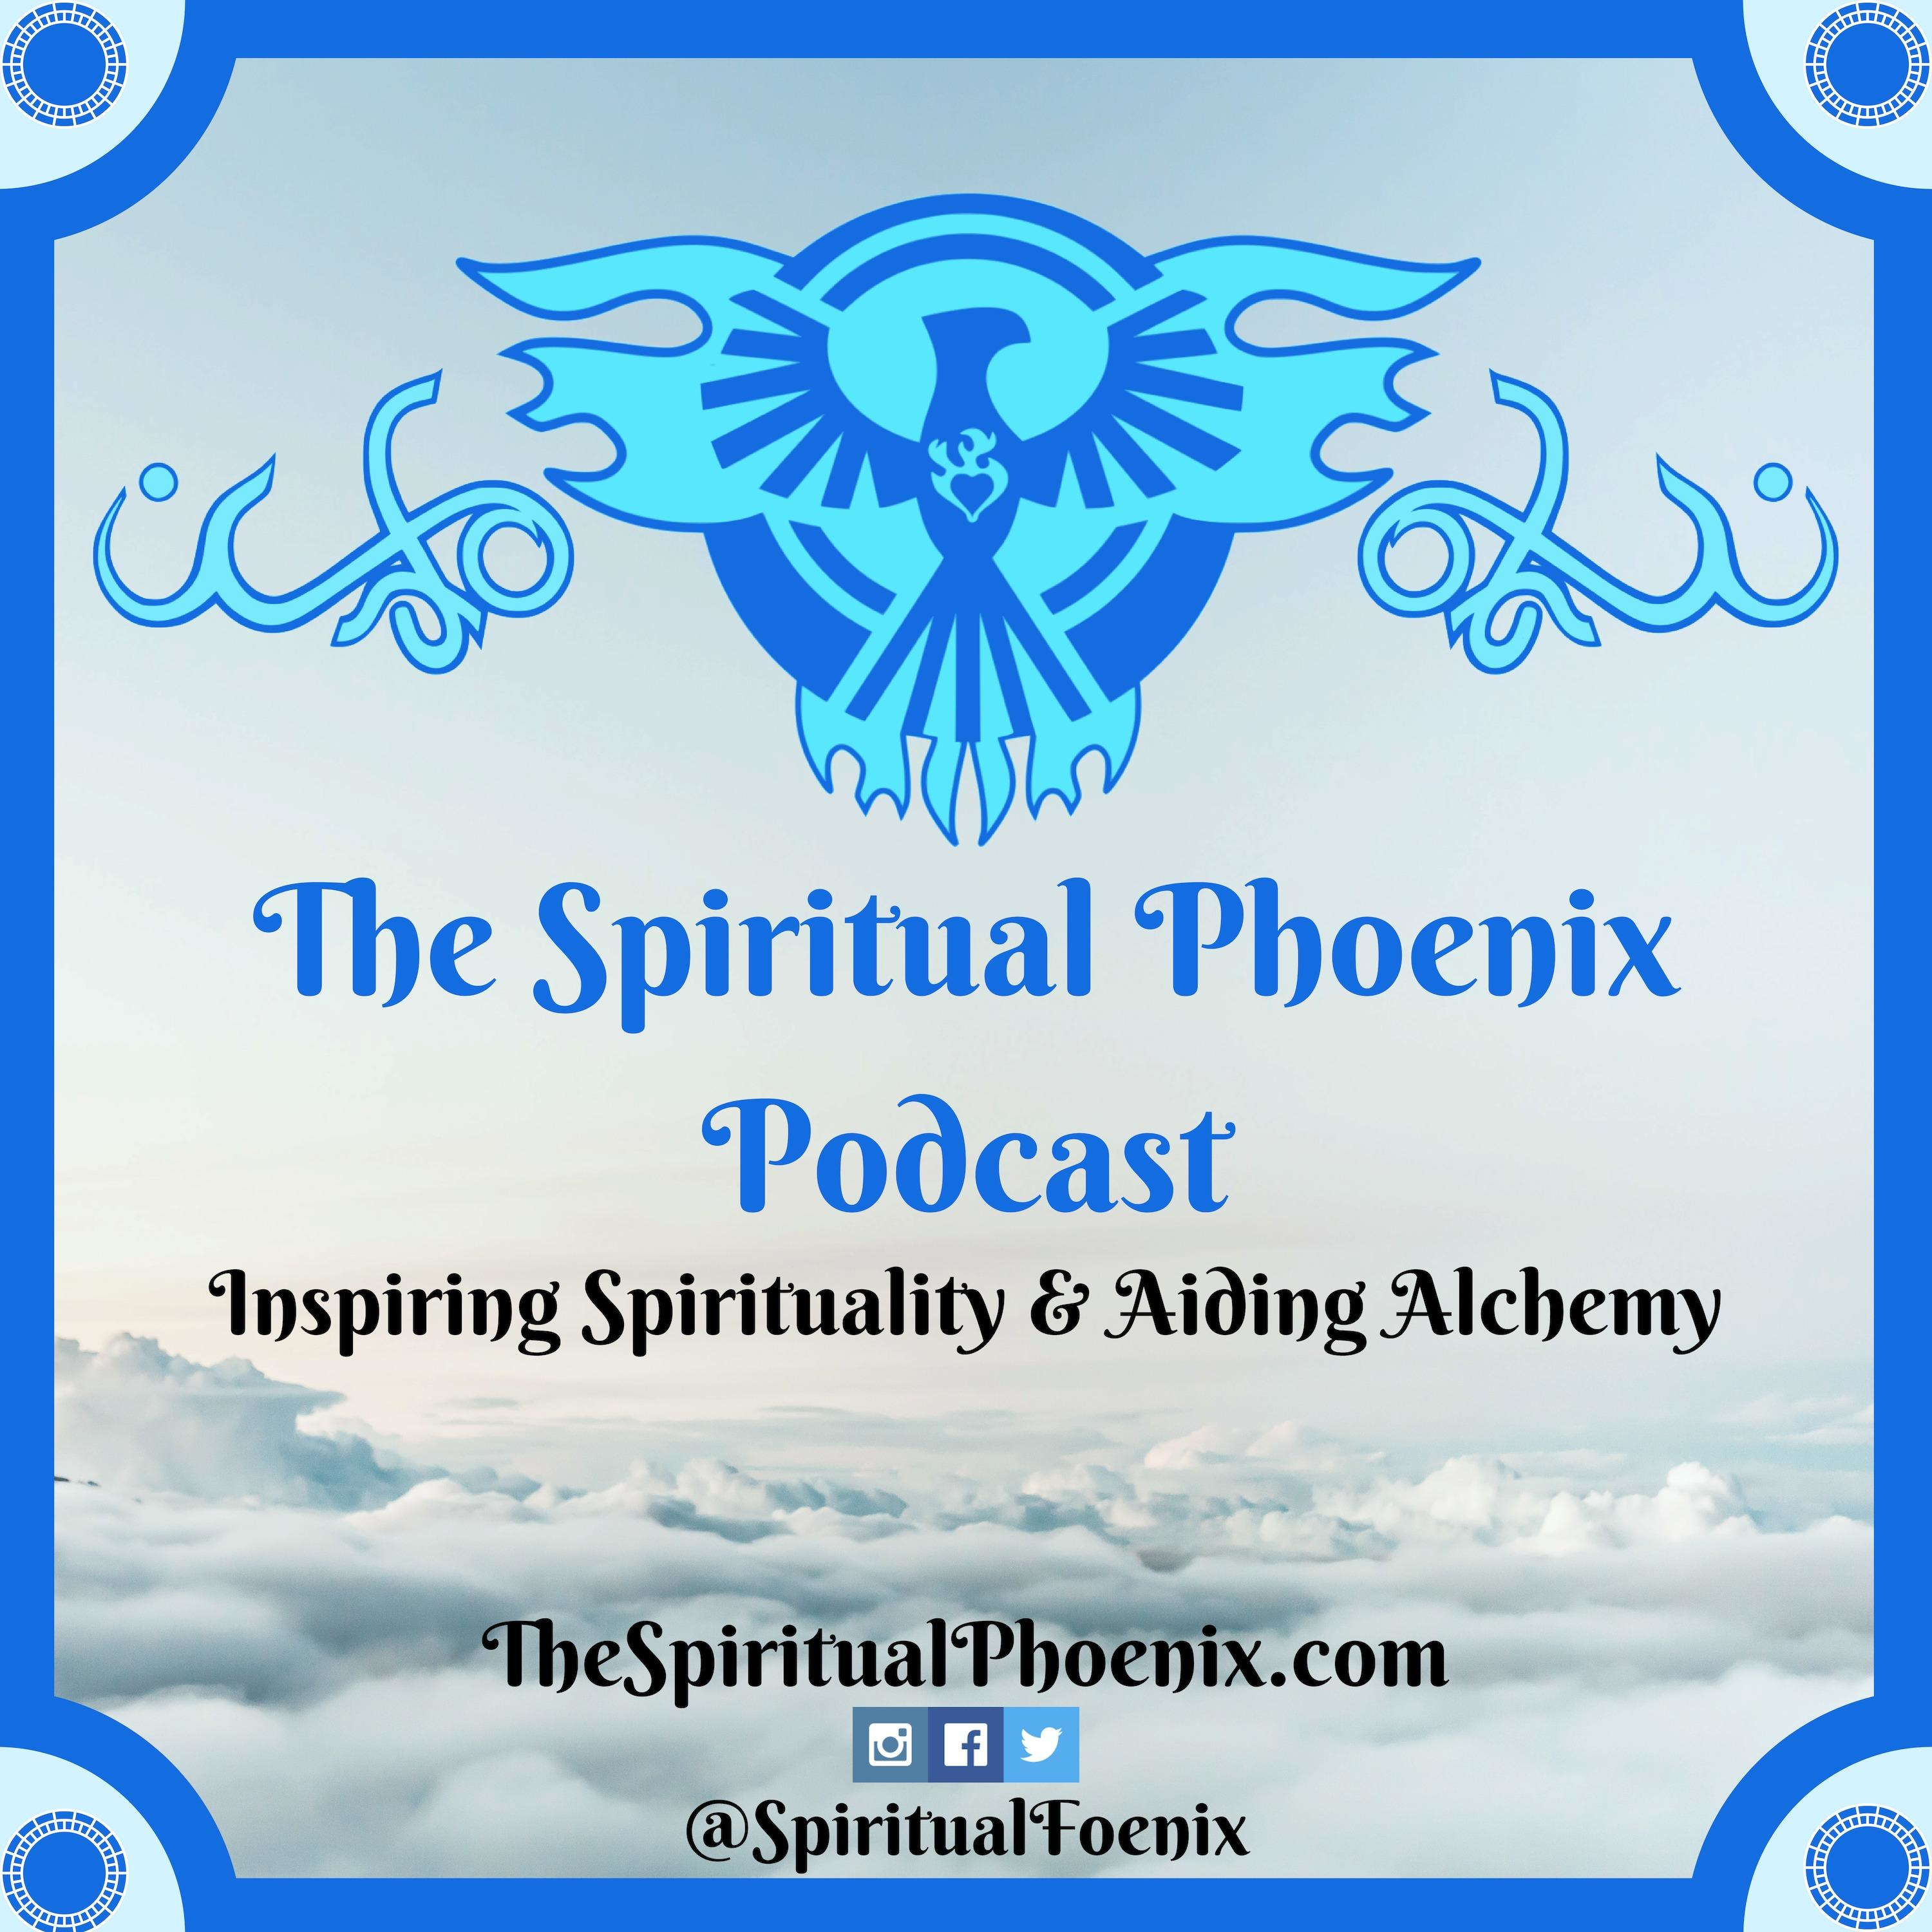 Episode 178 - Guided by Wings with Therese Heart